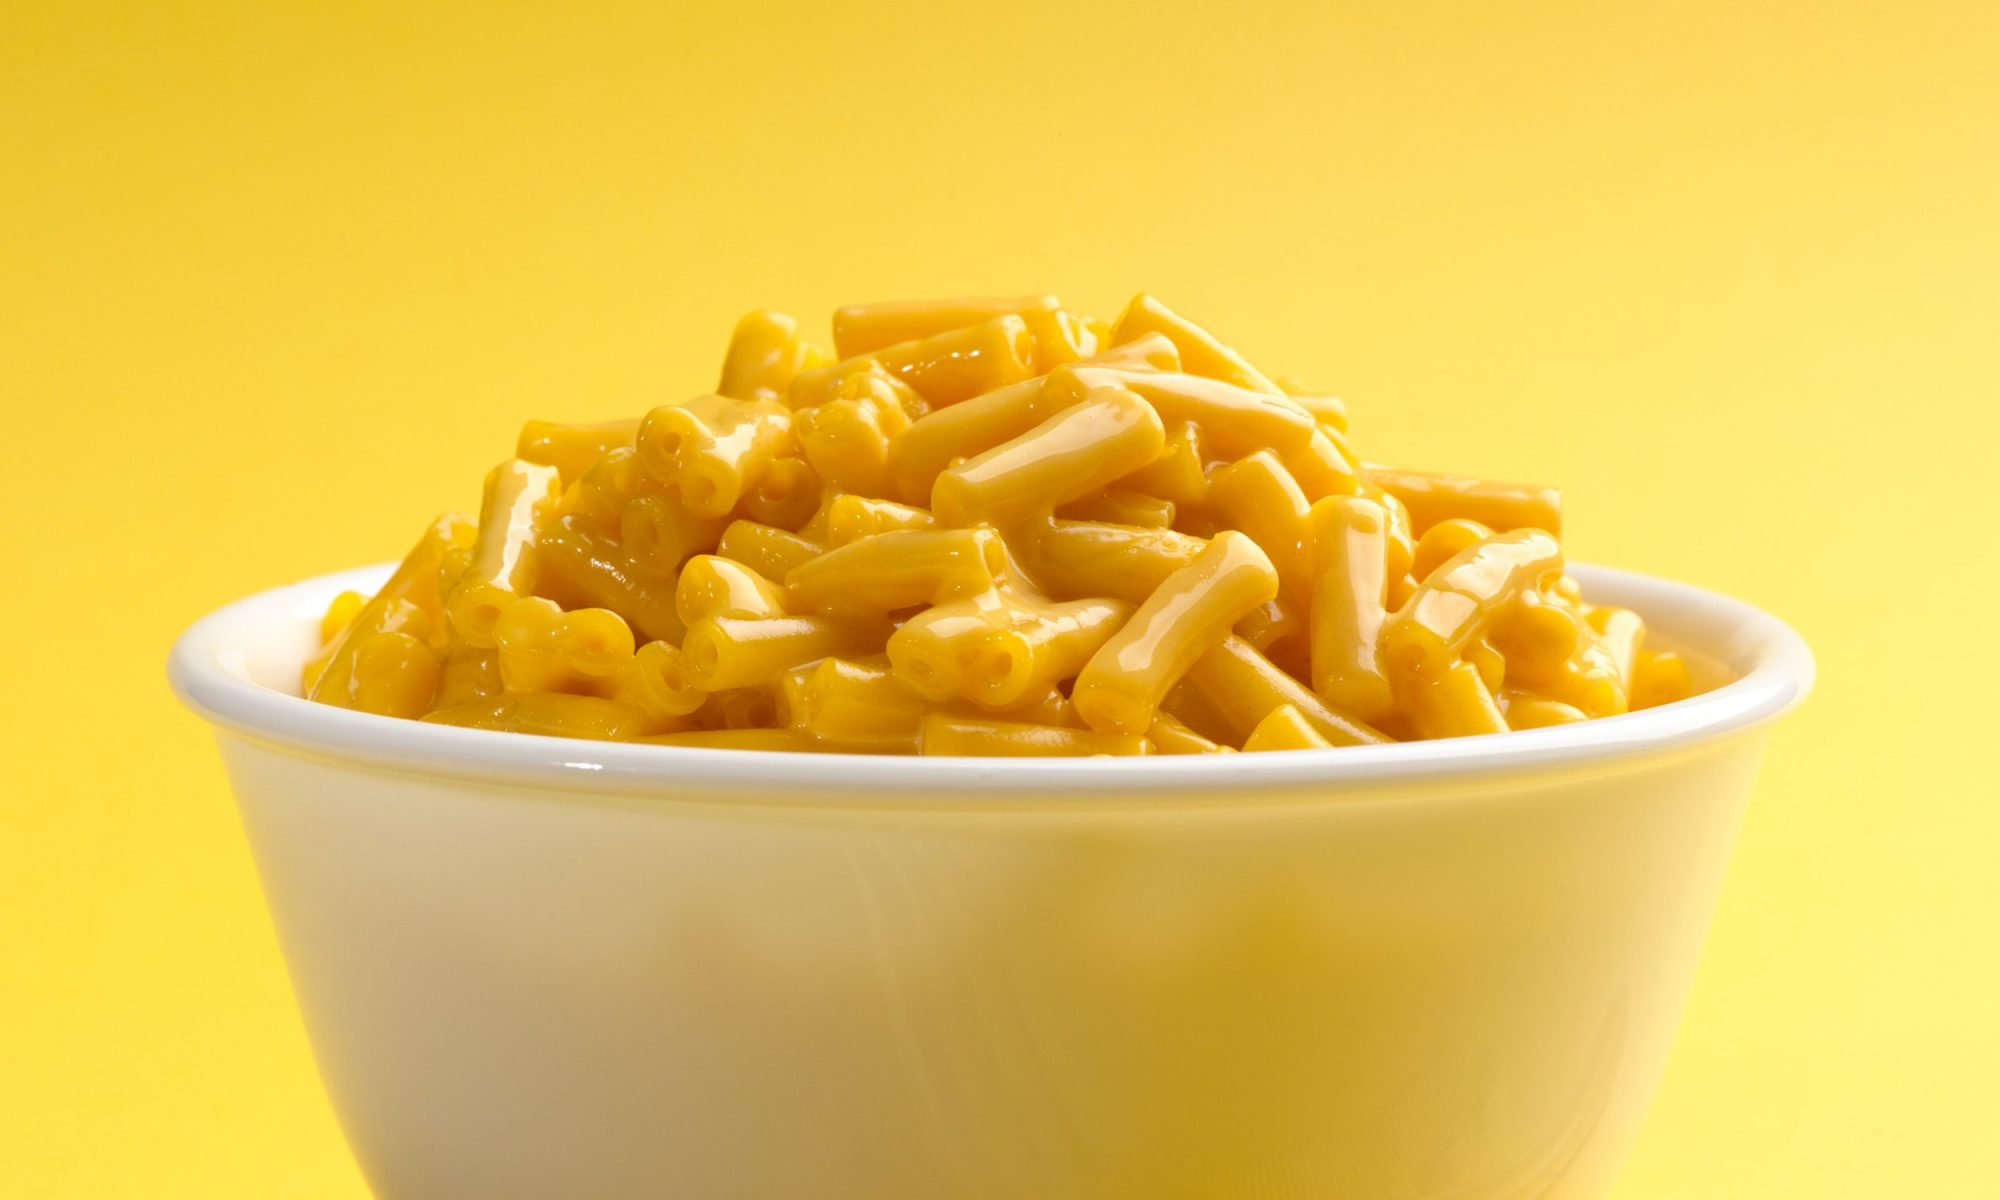 What's Actually in Boxed Mac & Cheese?